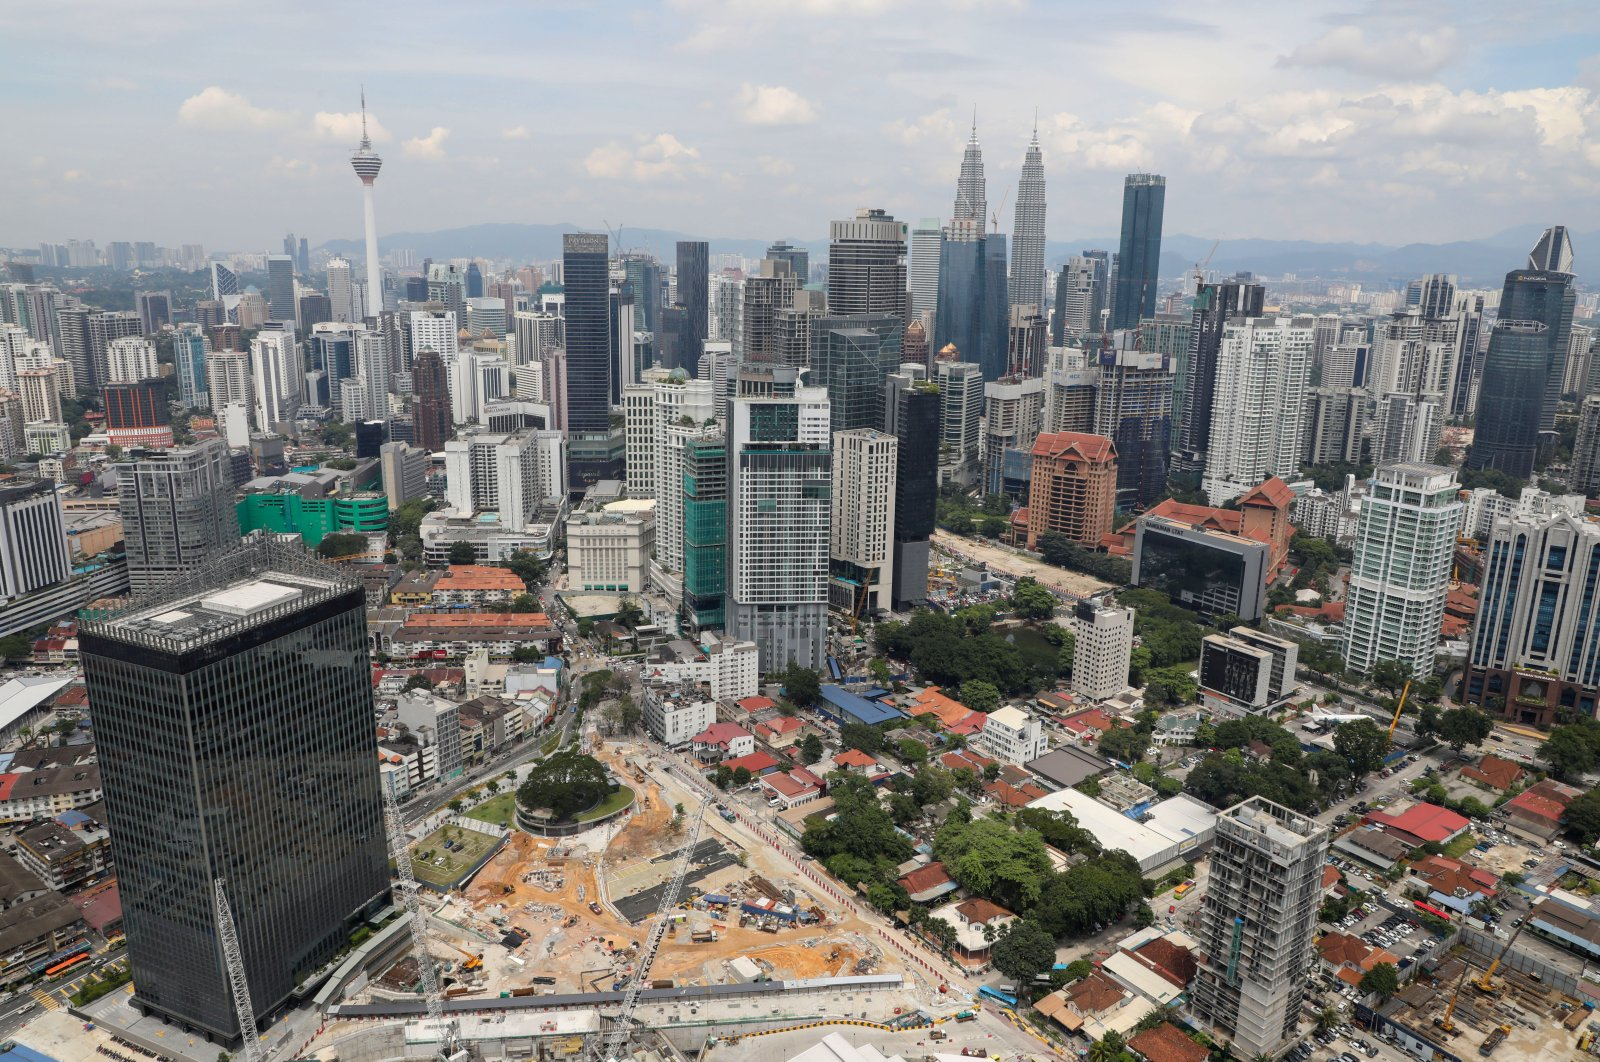 A view of the city skyline in Kuala Lumpur, Malaysia, Oct. 23, 2019. (Reuters Photo)